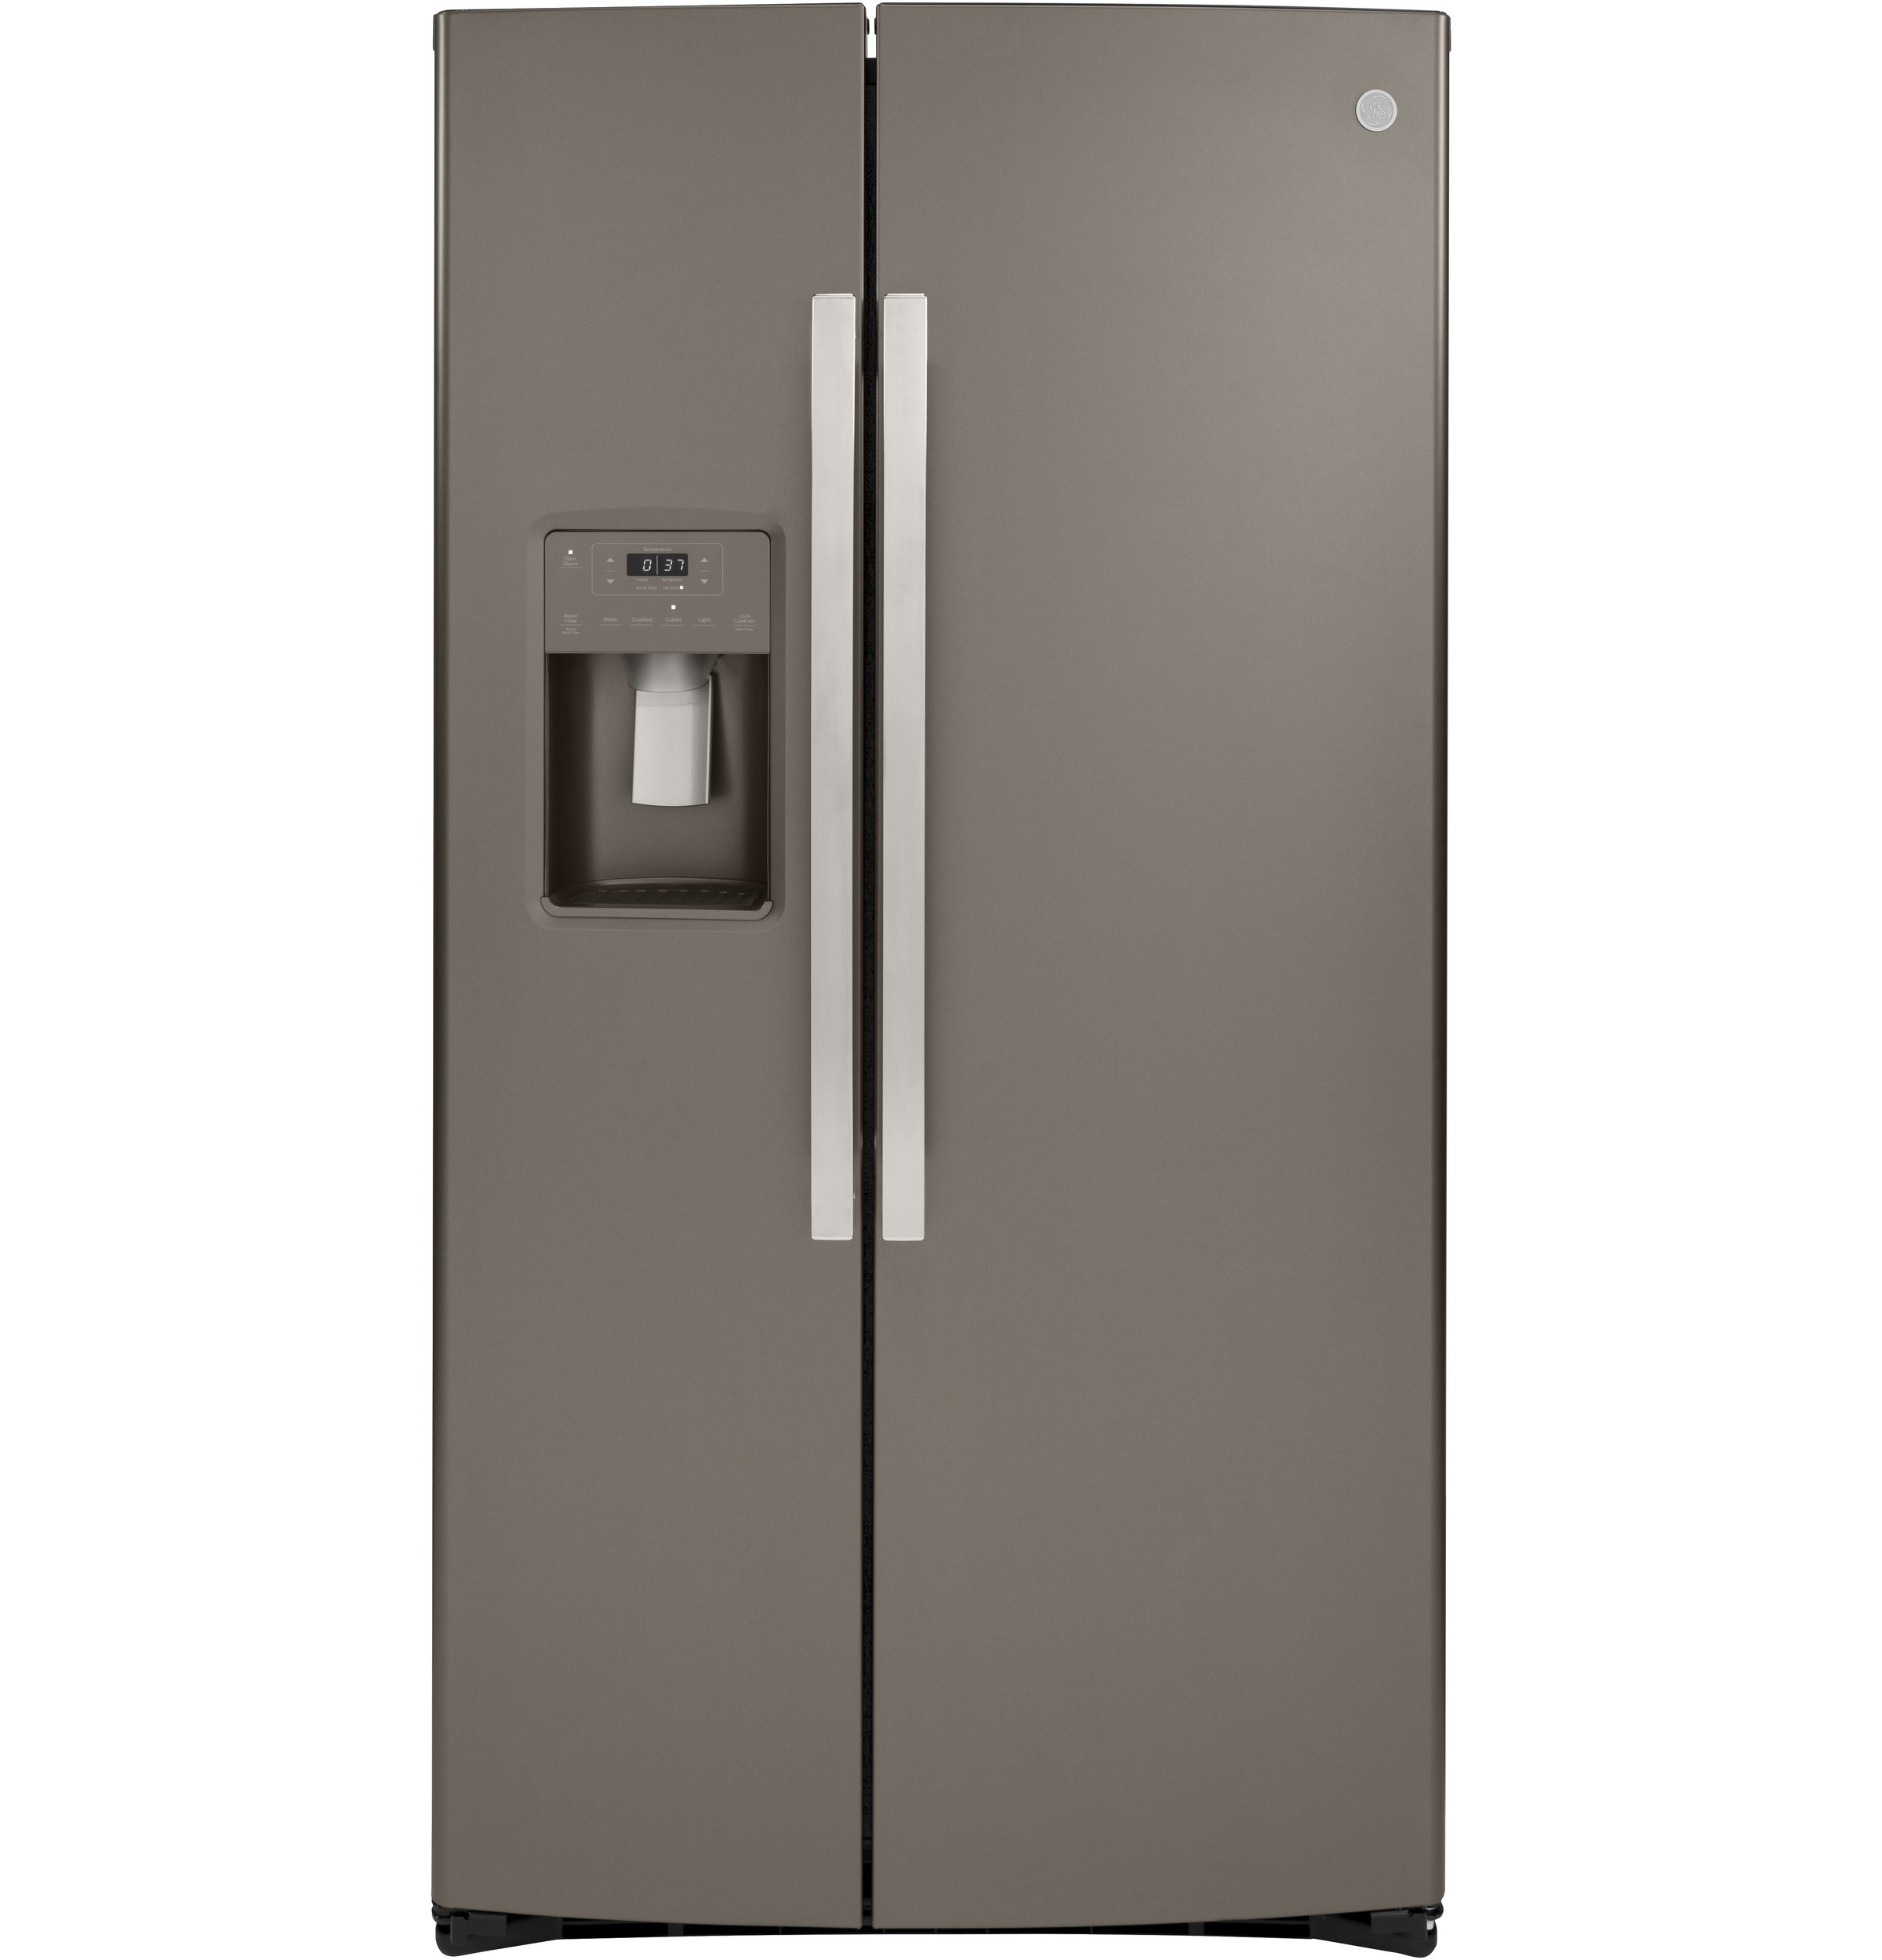 Model: GSS25IMNES | GE GE® 25.1 Cu. Ft. Side-By-Side Refrigerator